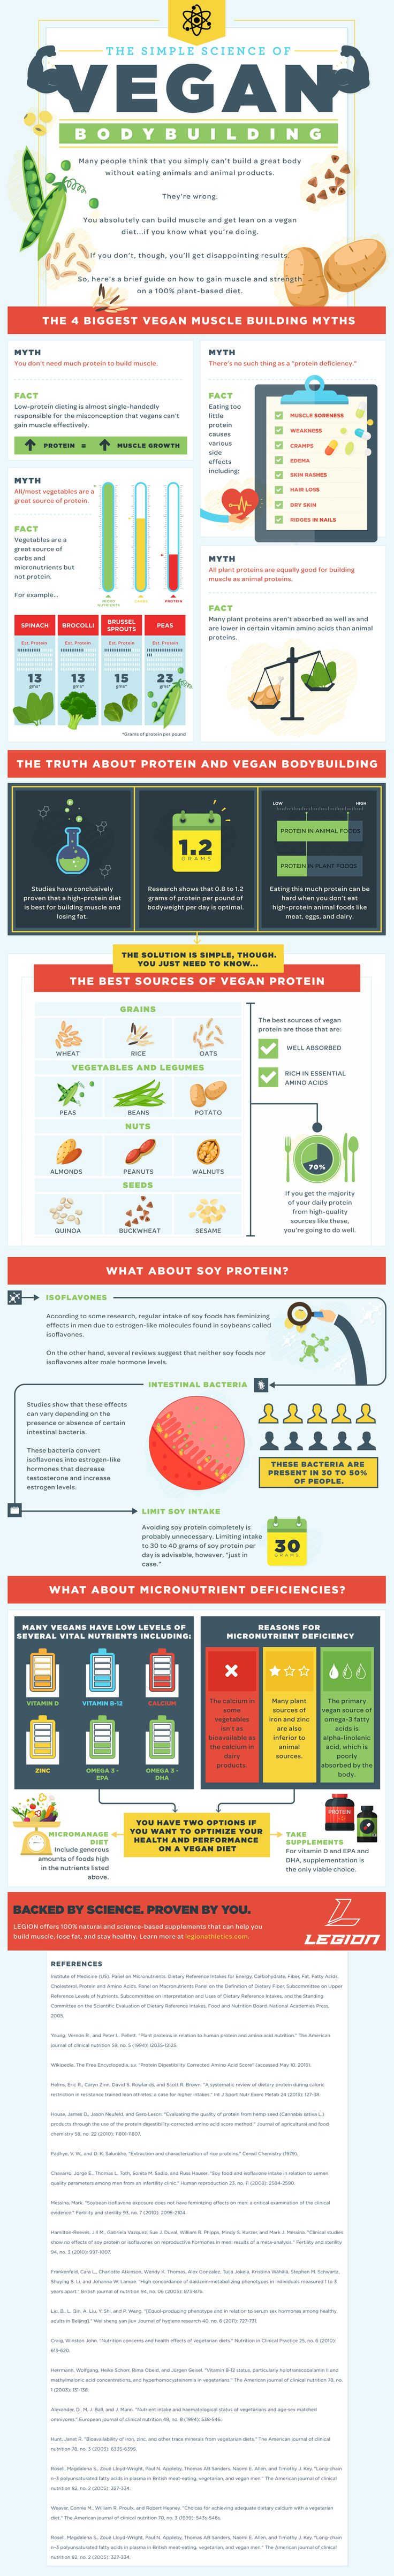 [INFOGRAPHIC] The Simple Science of Vegan Bodybuilding | In this one we talk about the science of vegan bodybuilding and why it's simply NOT TRUE that you can't build a great physique as a vegan.